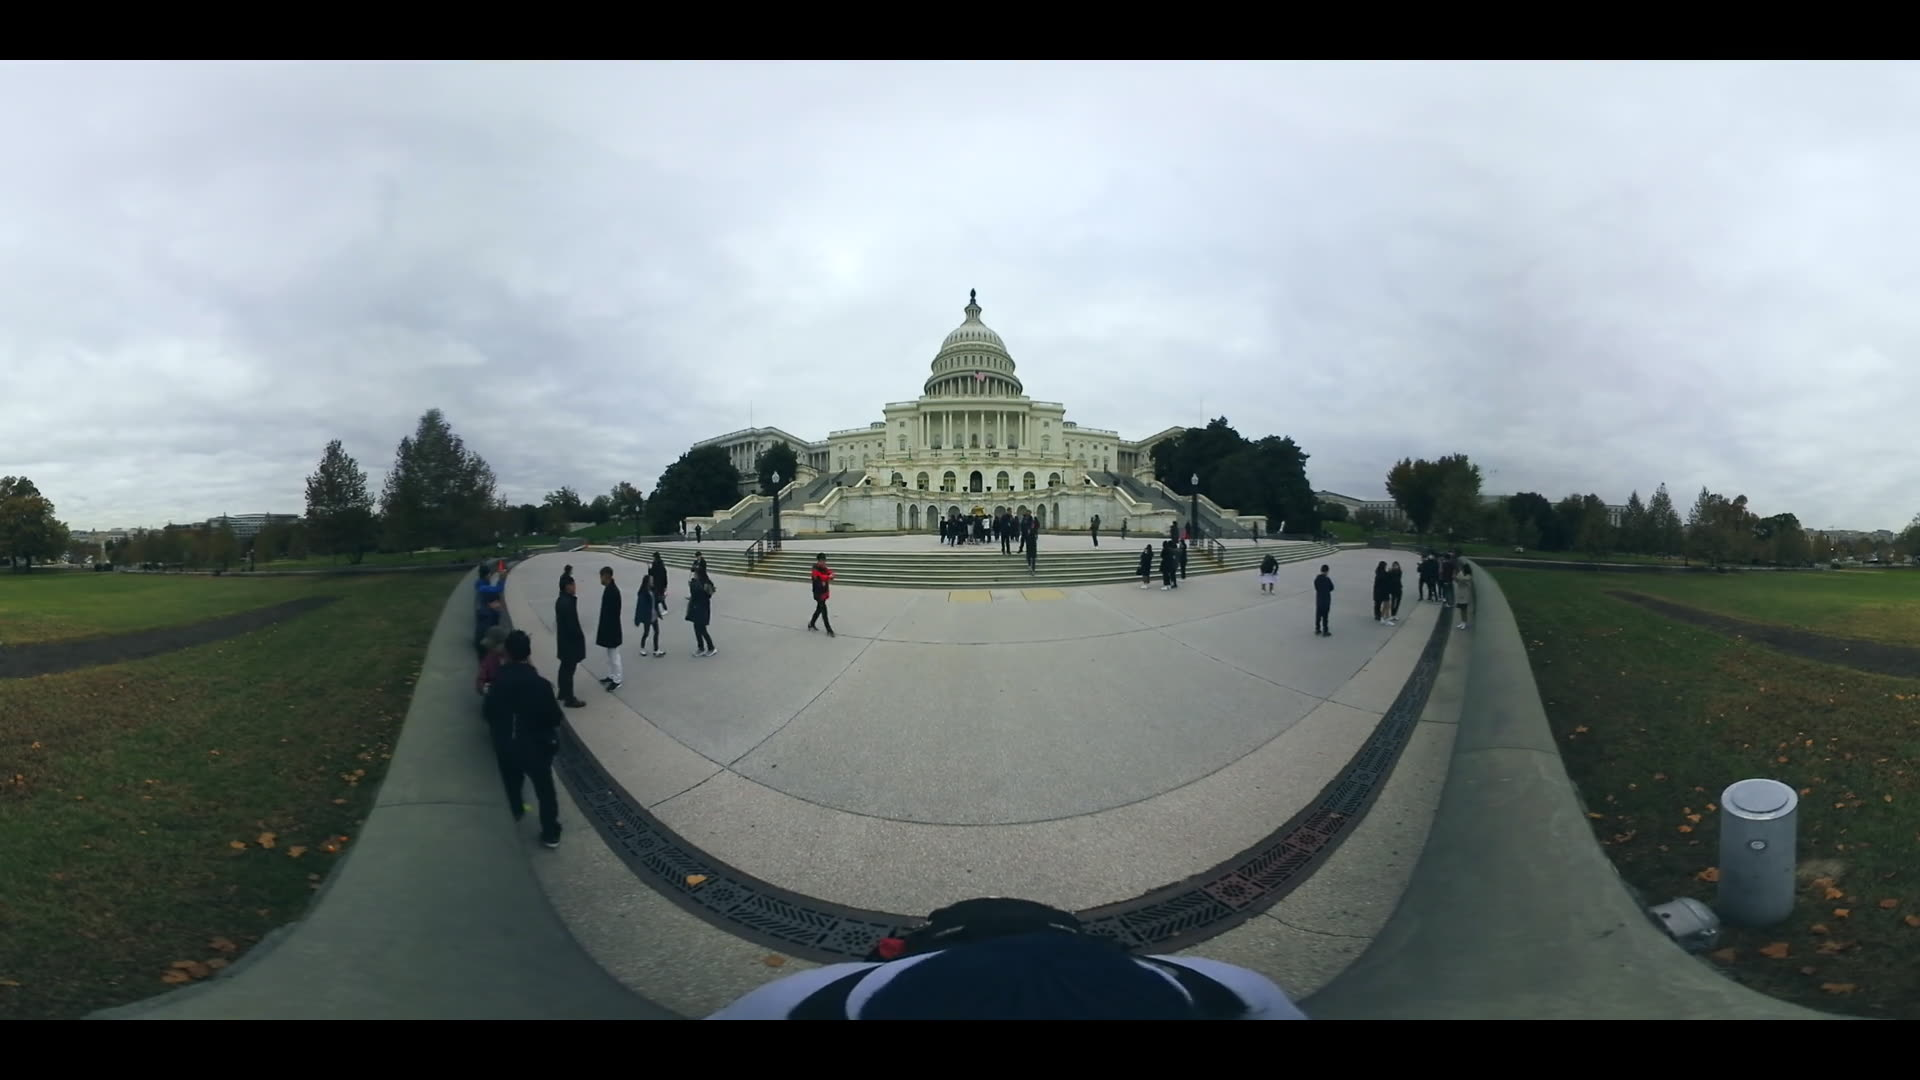 United States Capitol Building 360